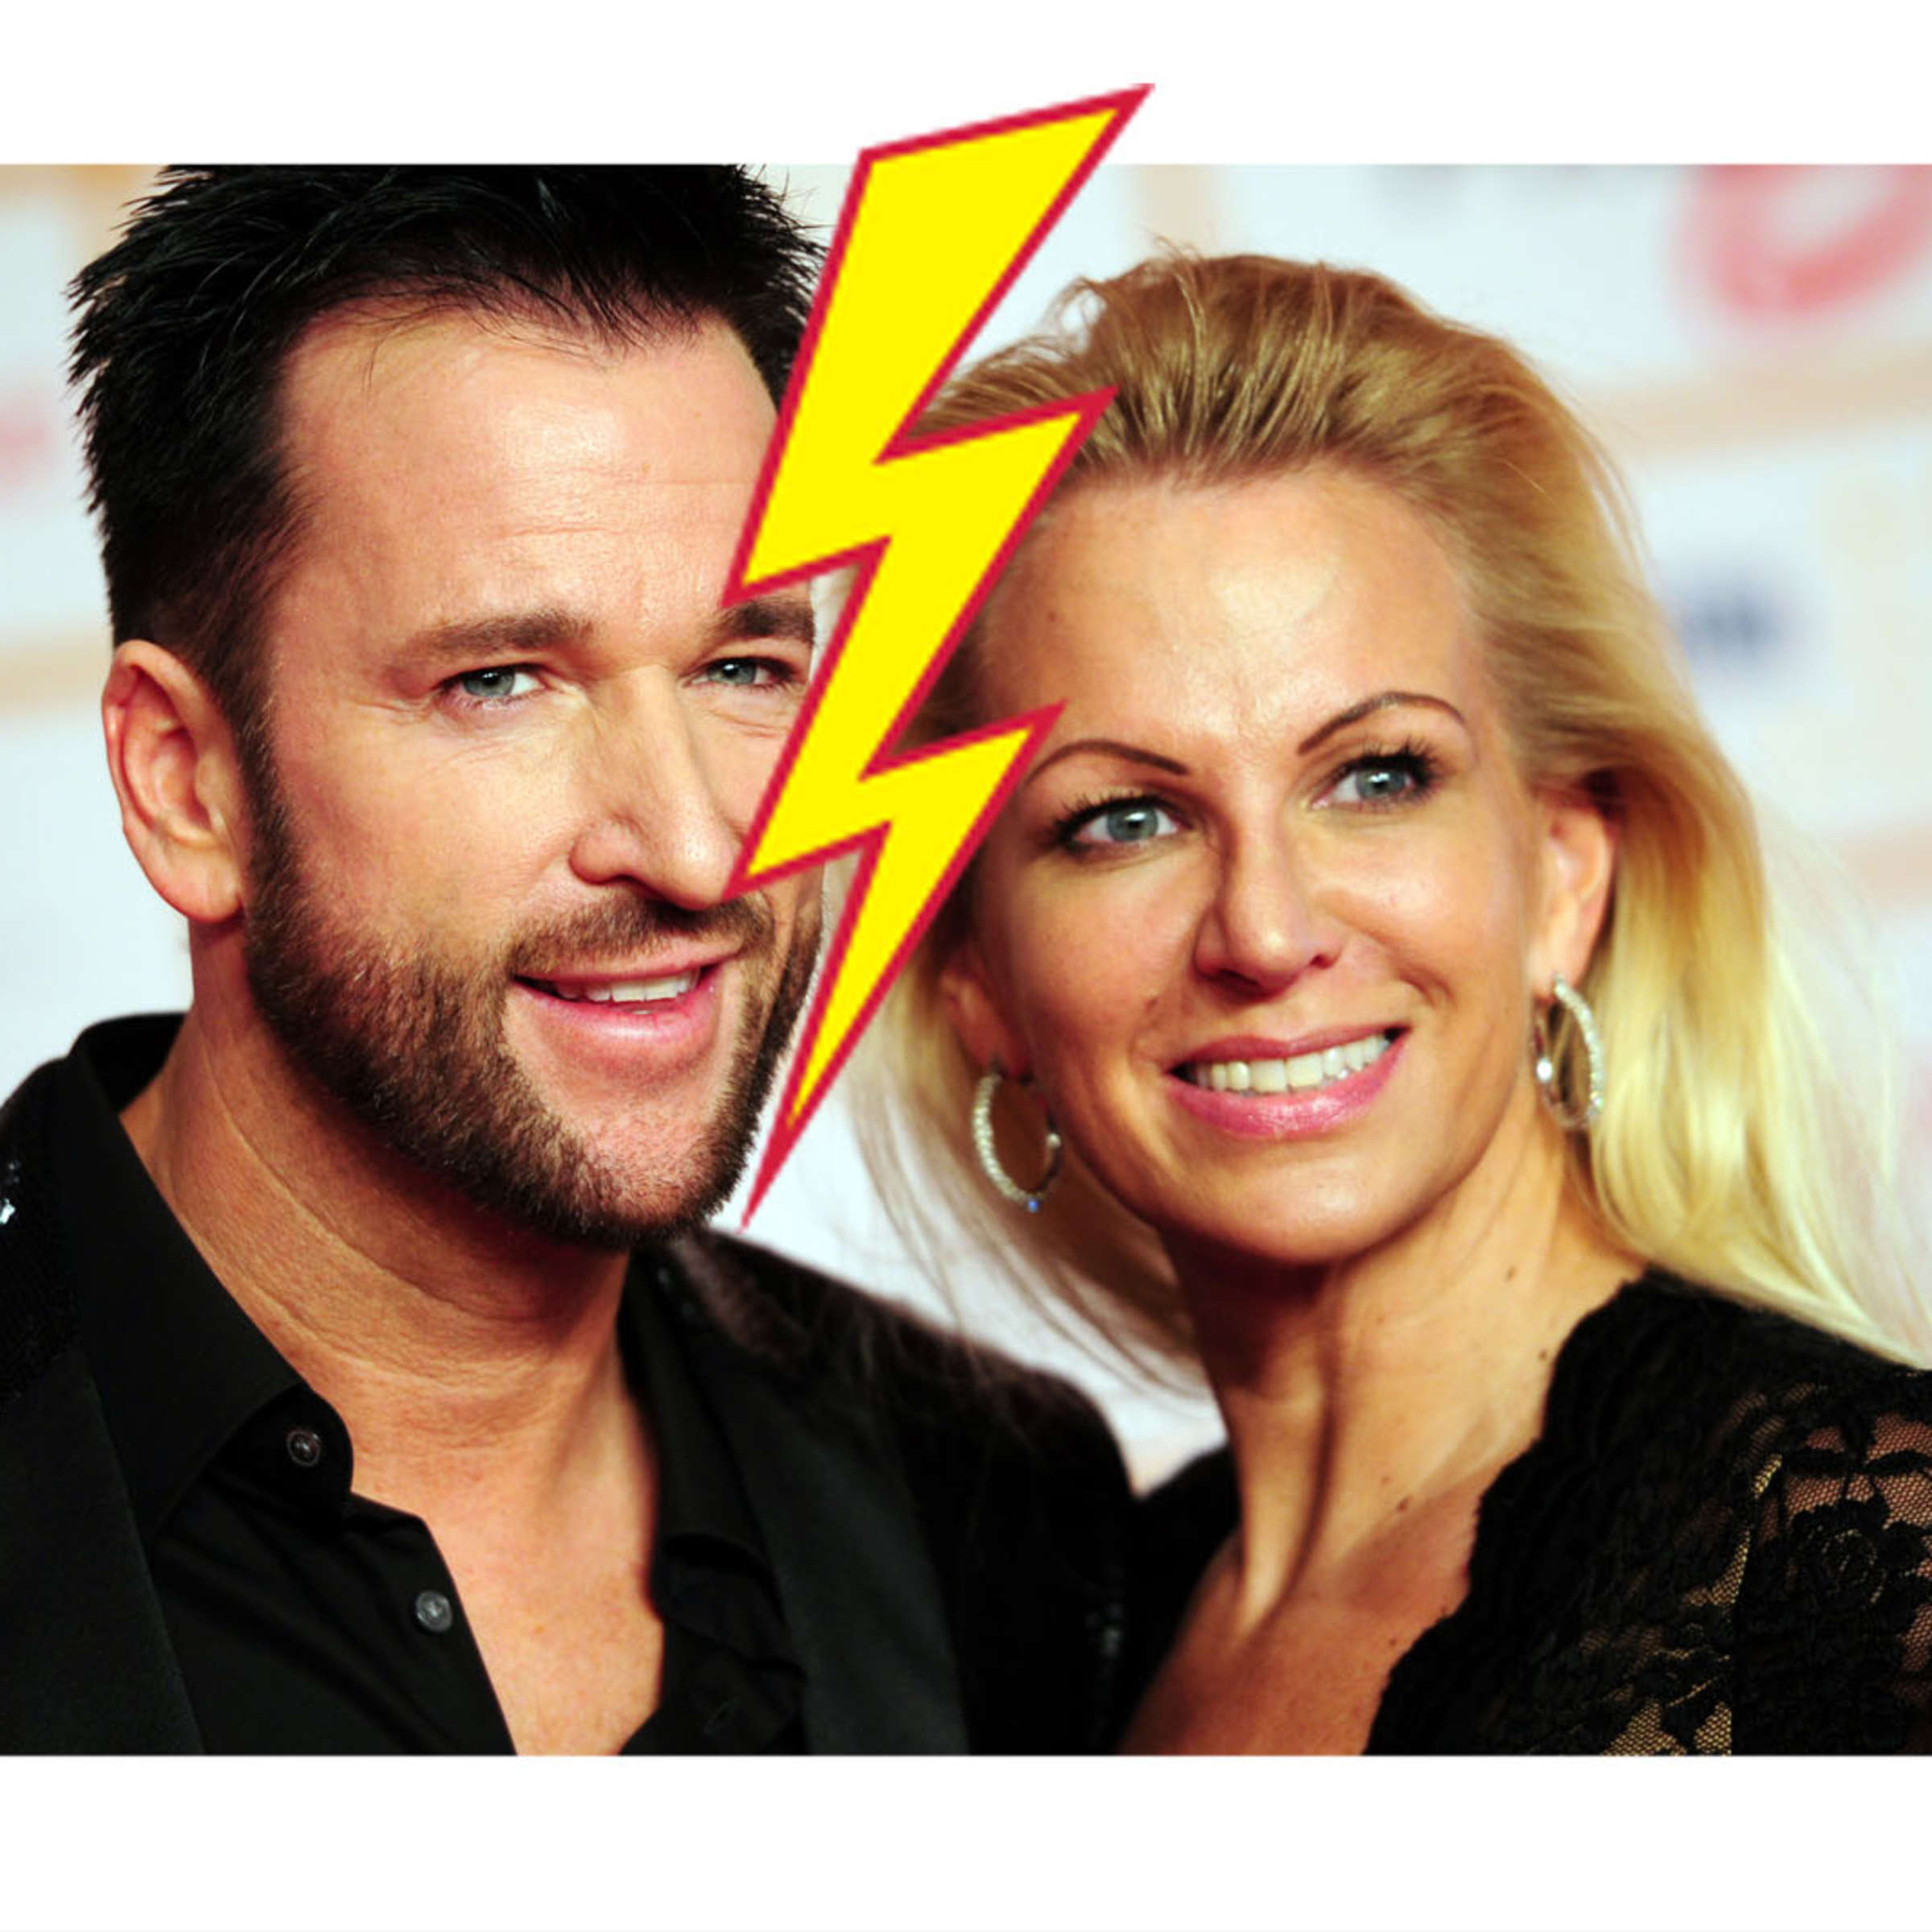 Schlager Michael Wendlers Ex Claudia Norberg Packt Aus Ehe Kaputt Gemacht Fanbase